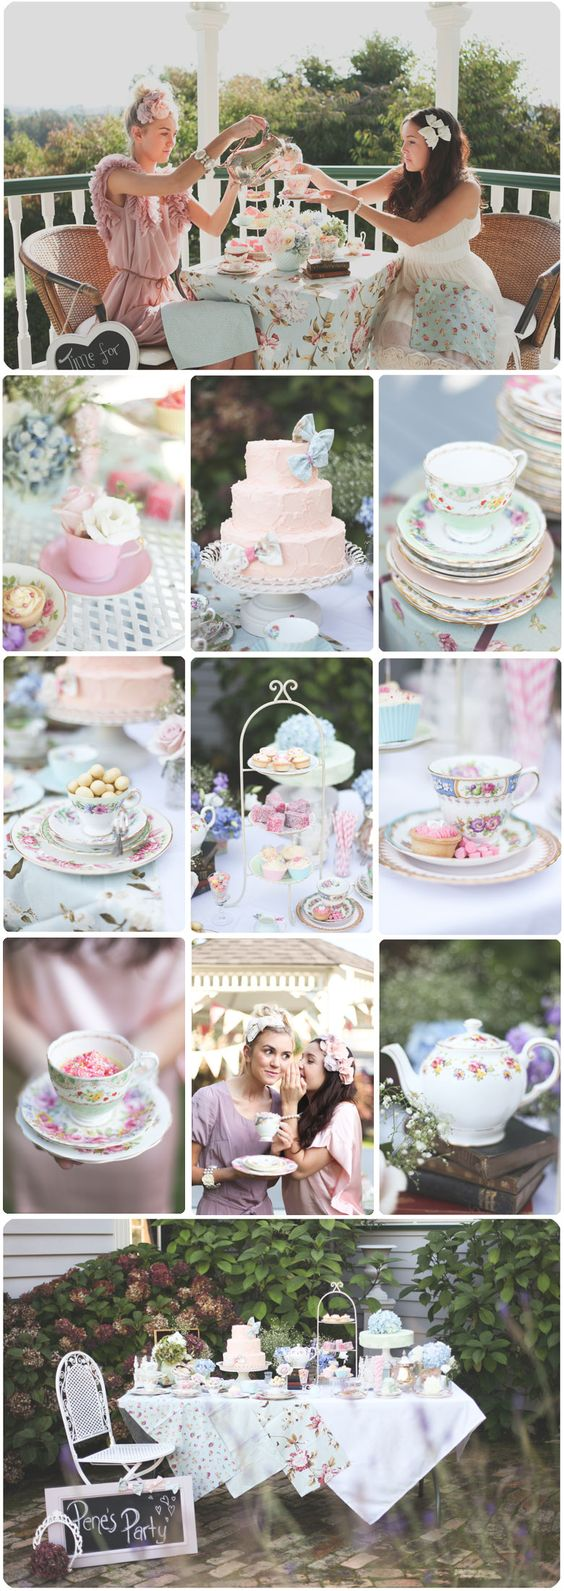 Summer Tea Party Ideas.jpg